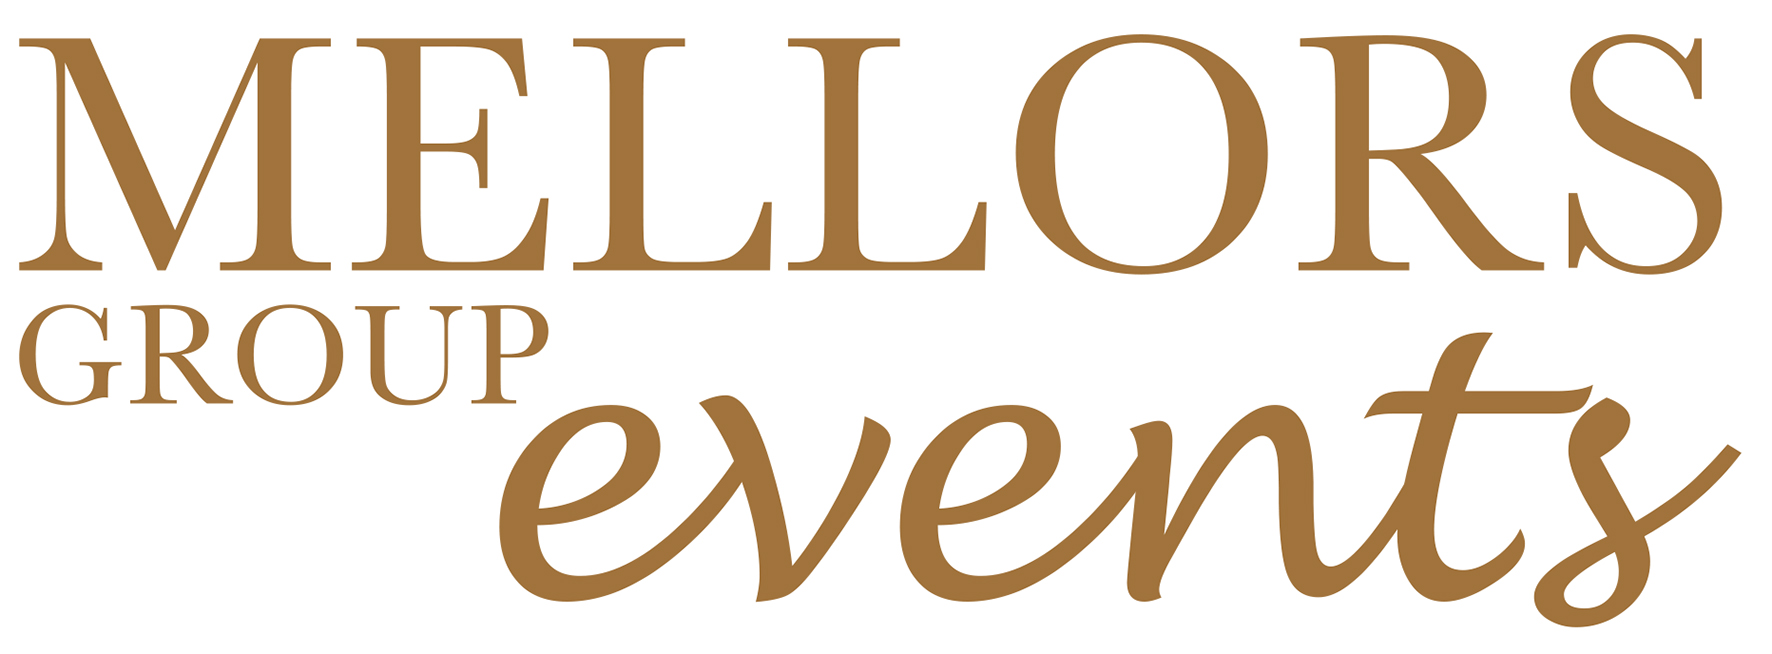 Mellors Group Logo